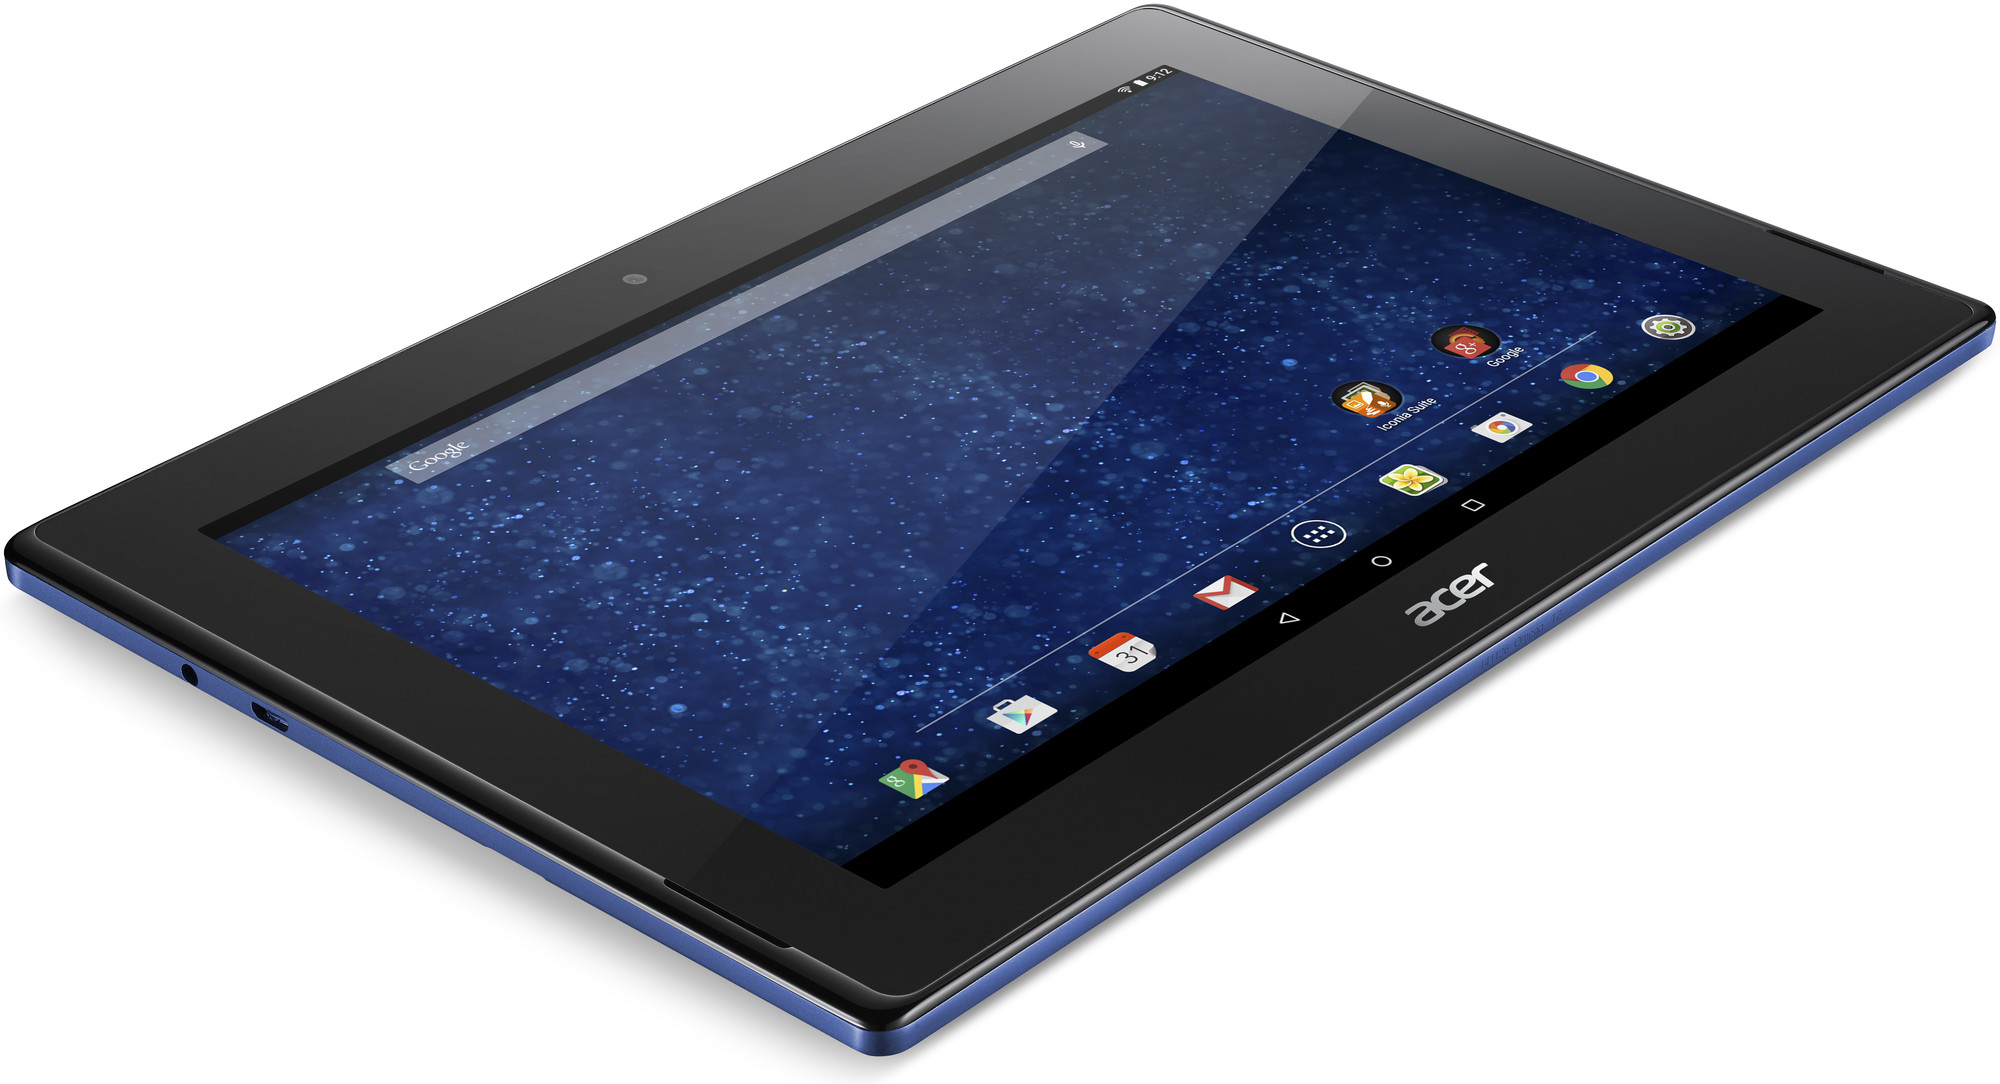 Acer Iconia Tab 10 A3-A30 64GB - Specs and Price